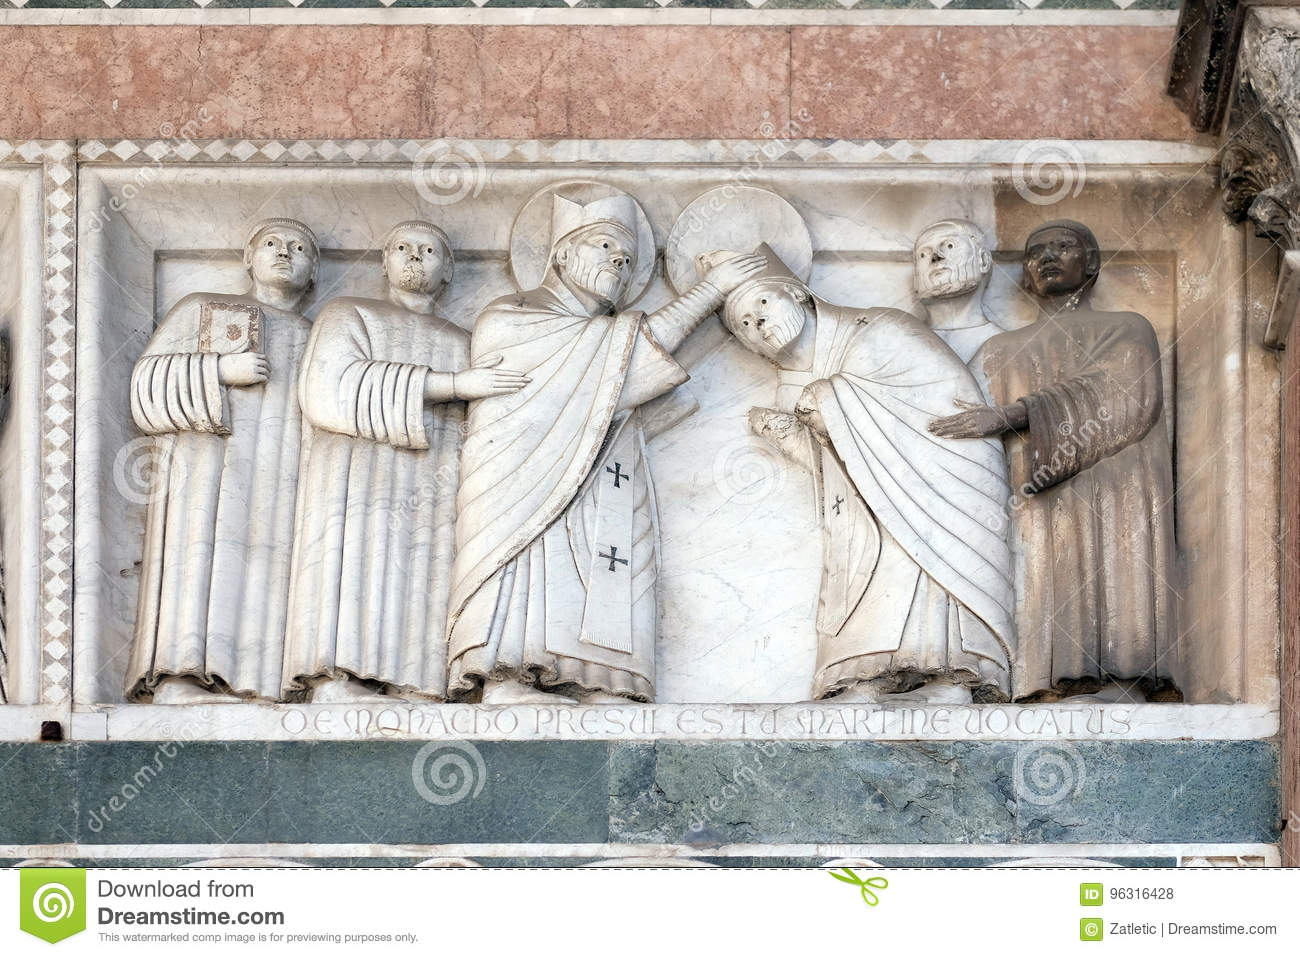 Bass-relief representing the Stories of St. Martin, Cathedral of St. Martin in Lucca, Italy